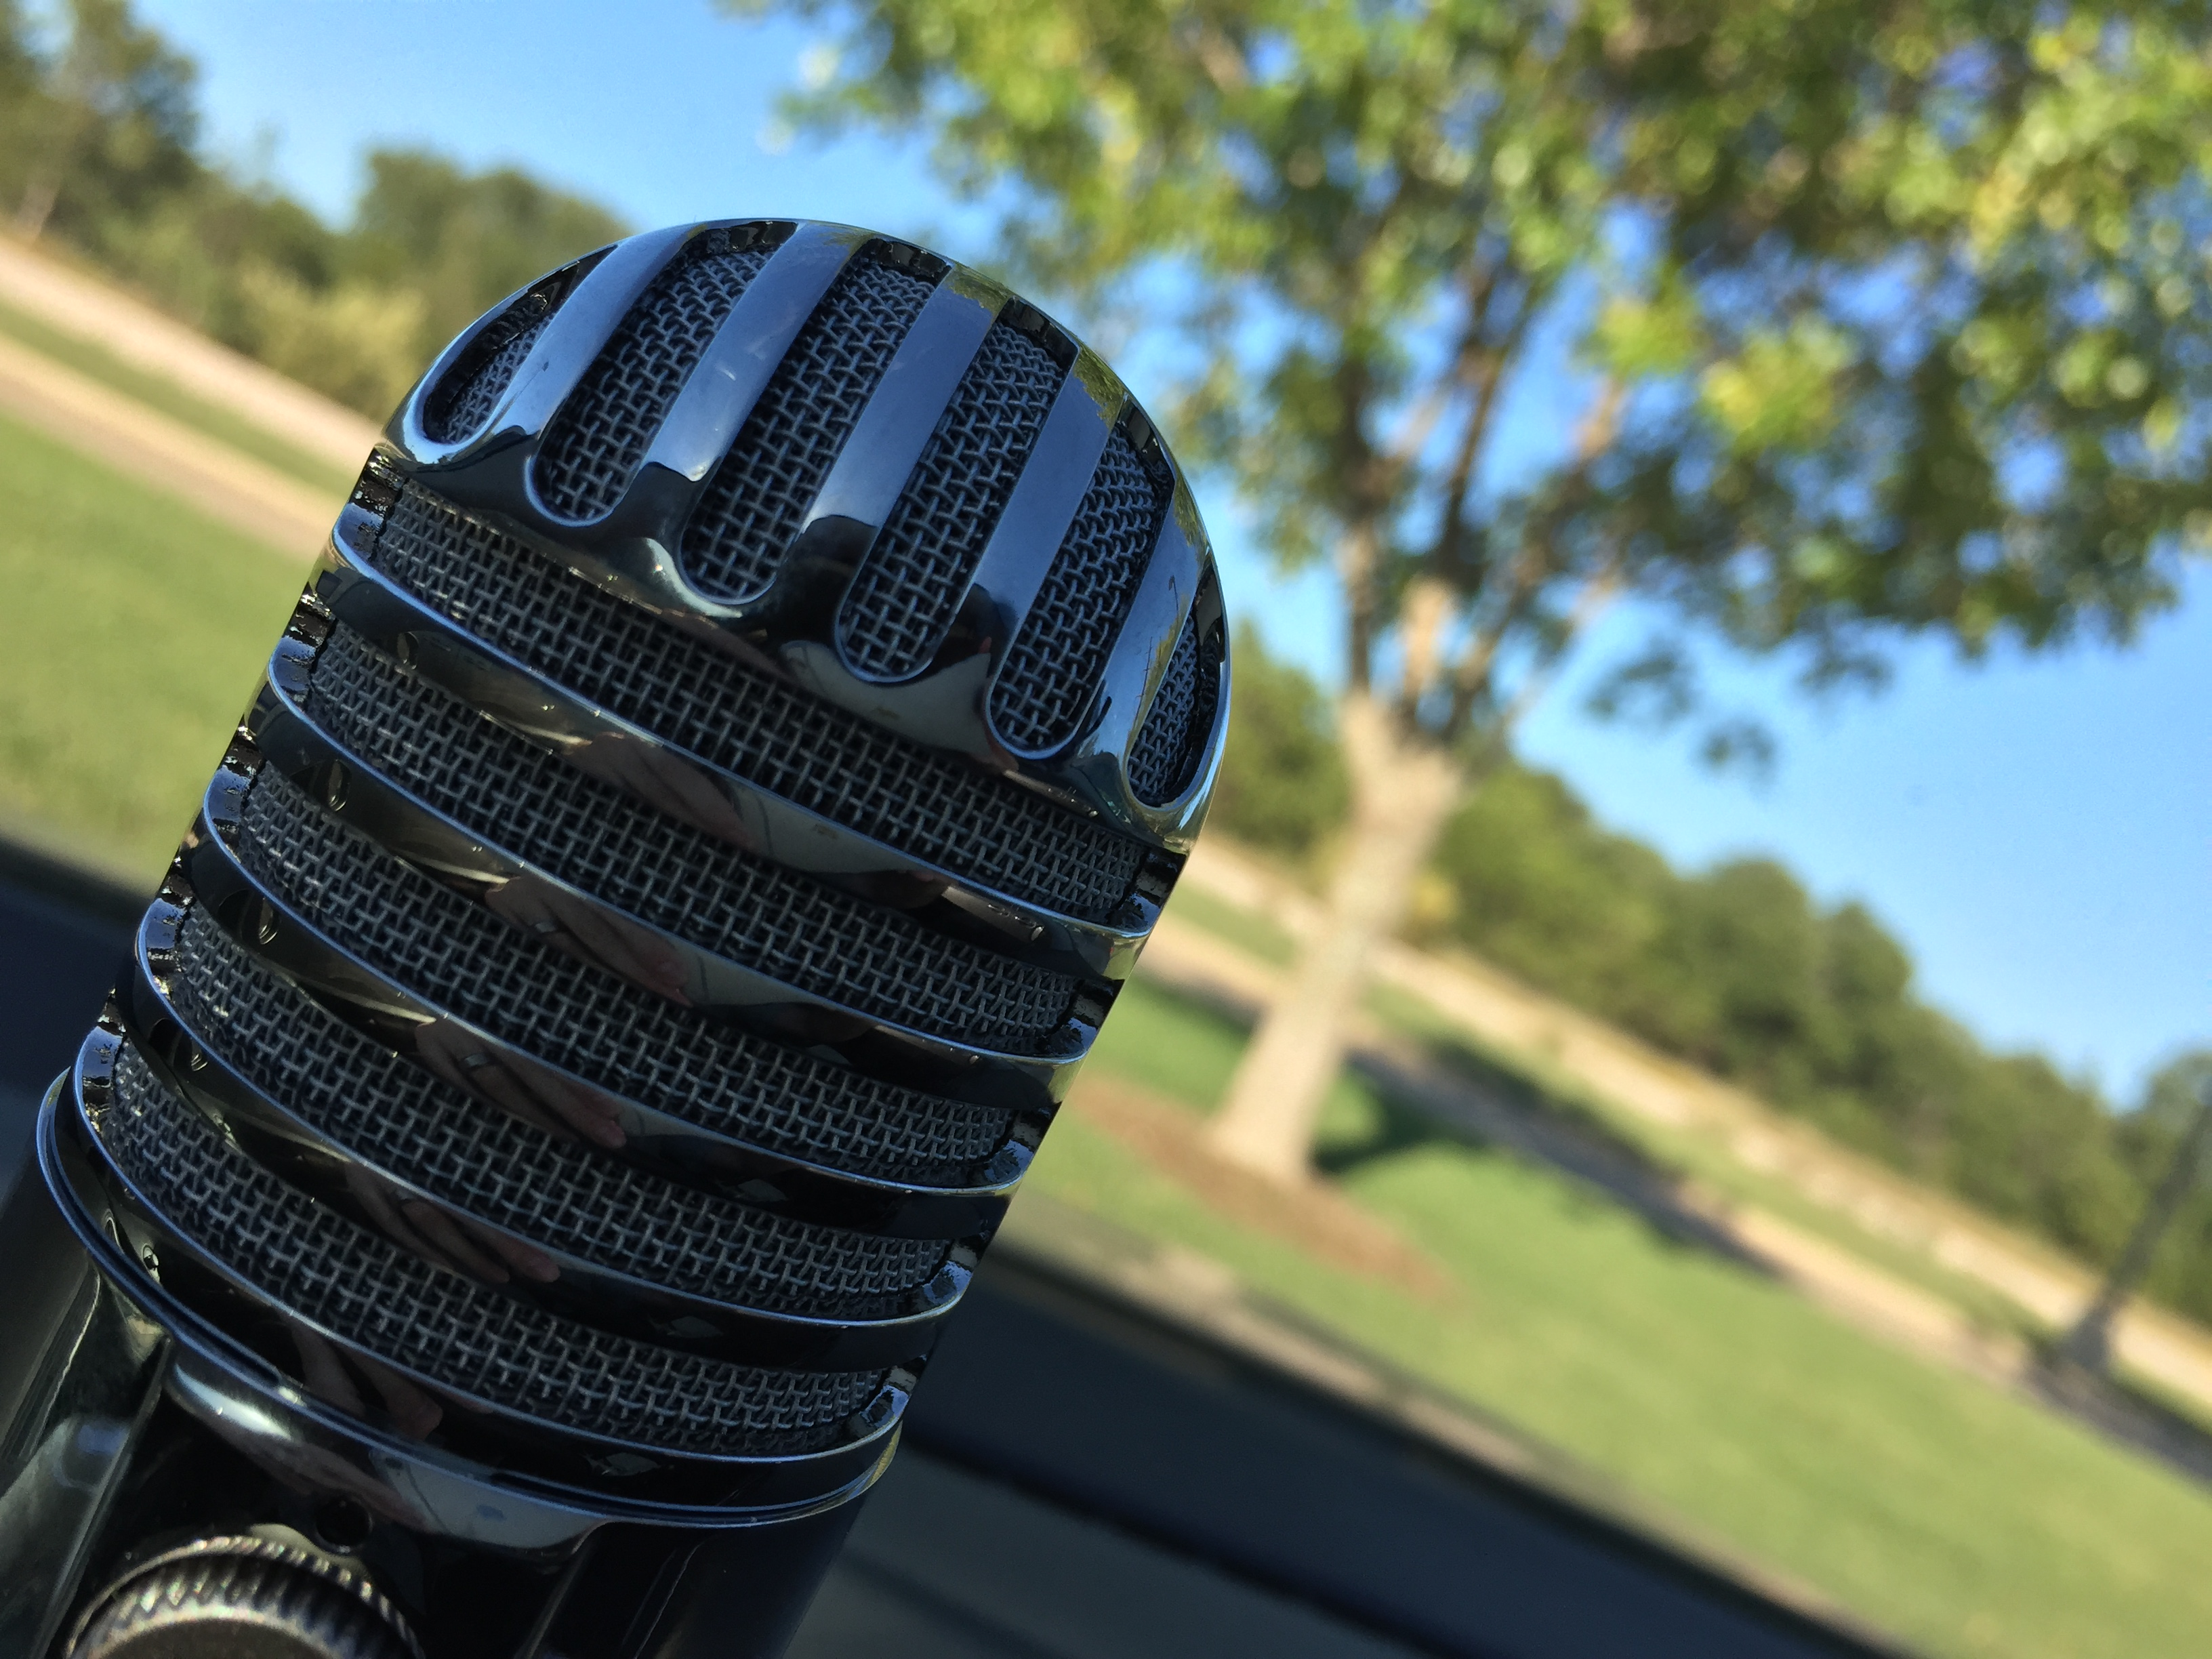 Caption: A microphone on the dashboard of my car., Credit: Matt Croydon